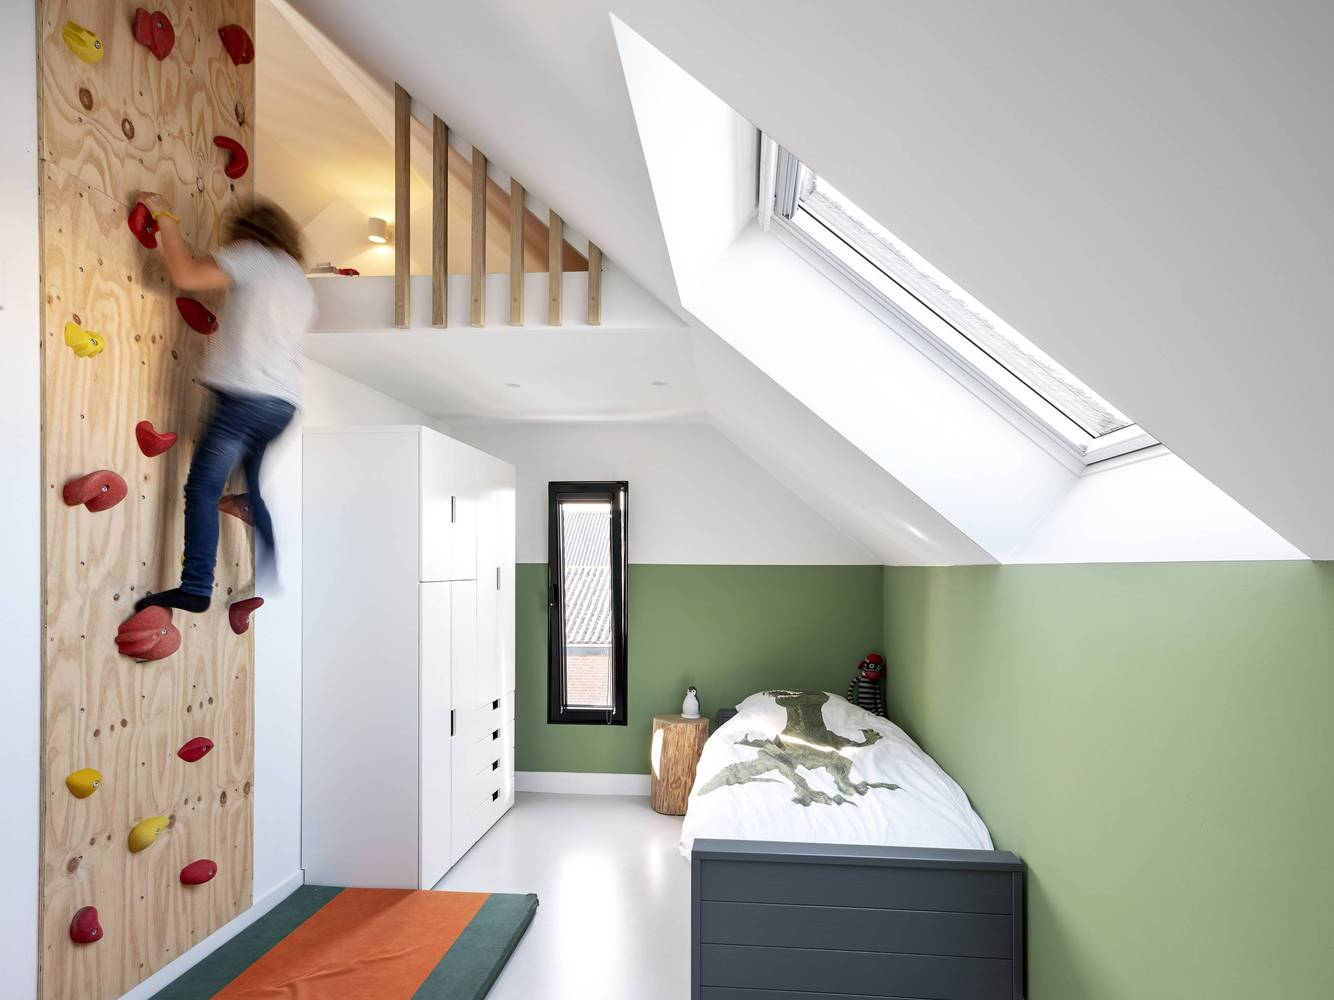 The upstairs bedrooms are decorated with lots of fun features too, like this climbing wall